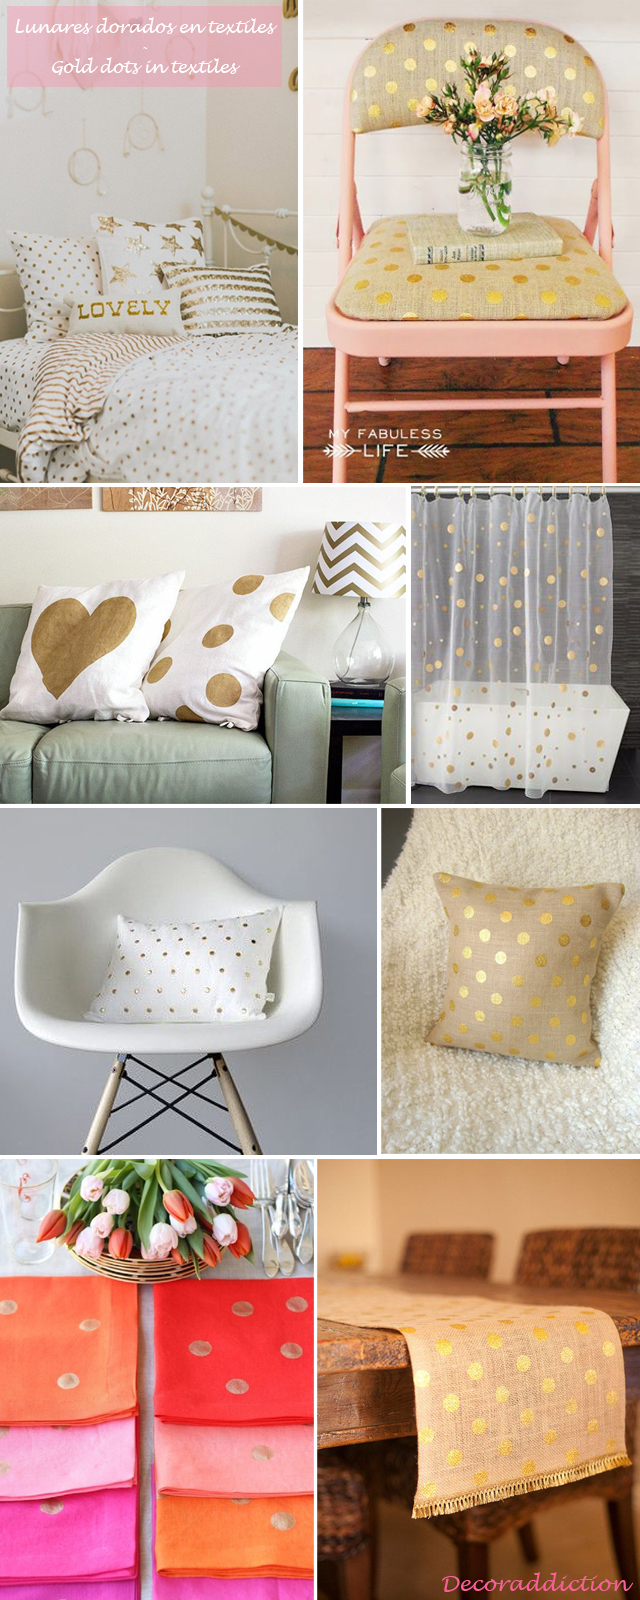 Decorar con lunares dorados hechos por ti - DIY gold dots decorations_textiles